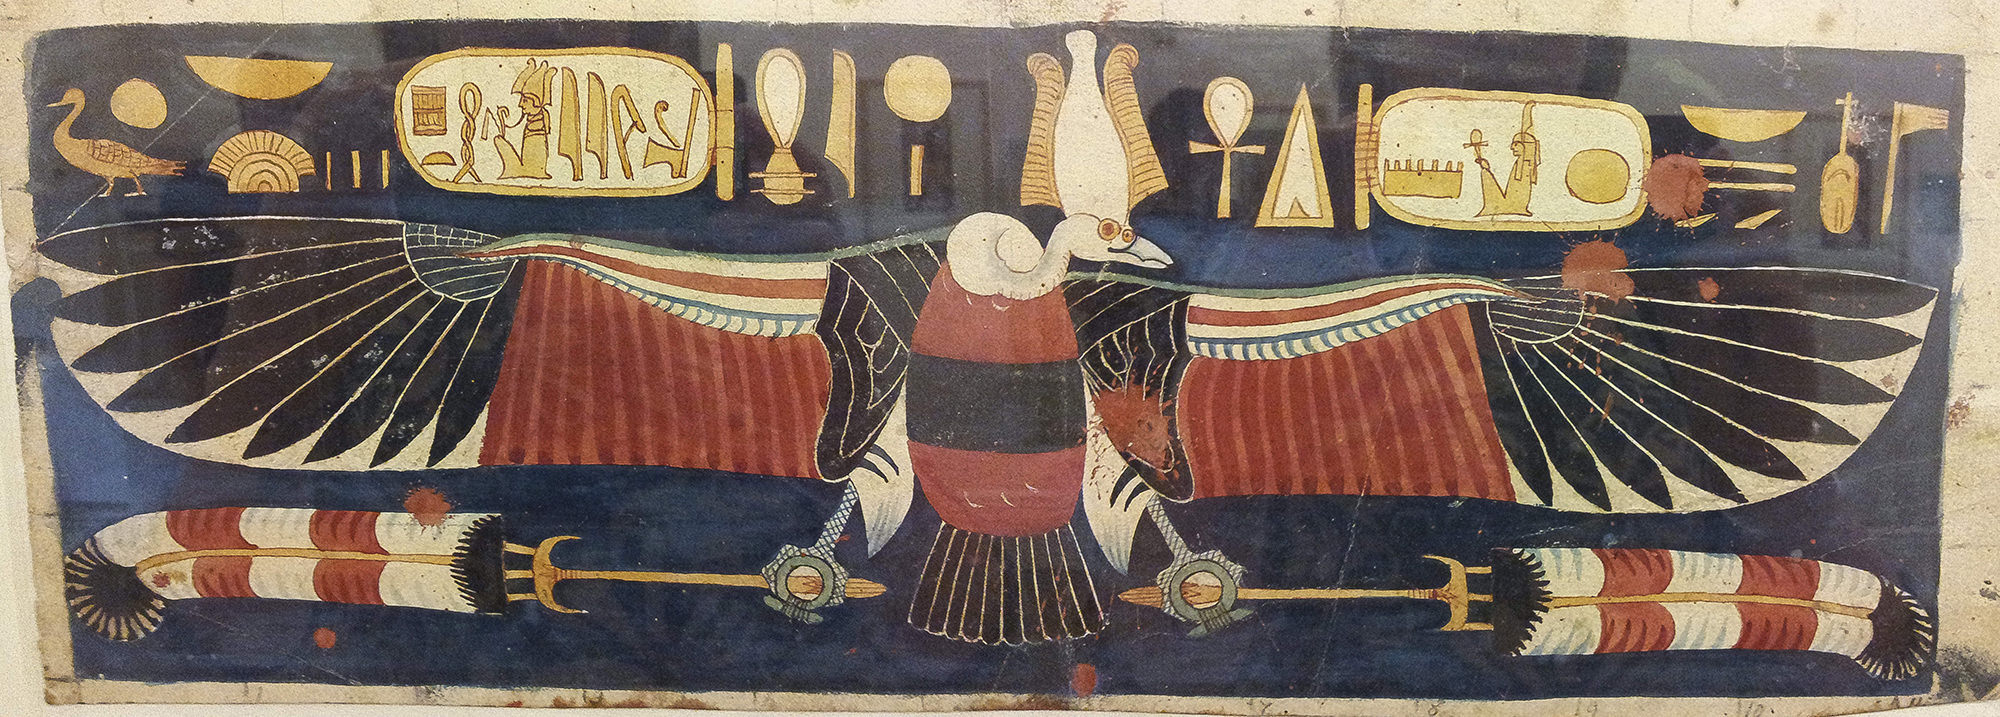 Nekhbet as a vulture, with outstretched wings and wearing an Atef crown. She has hieroglyphs either side of her, running along above her wings